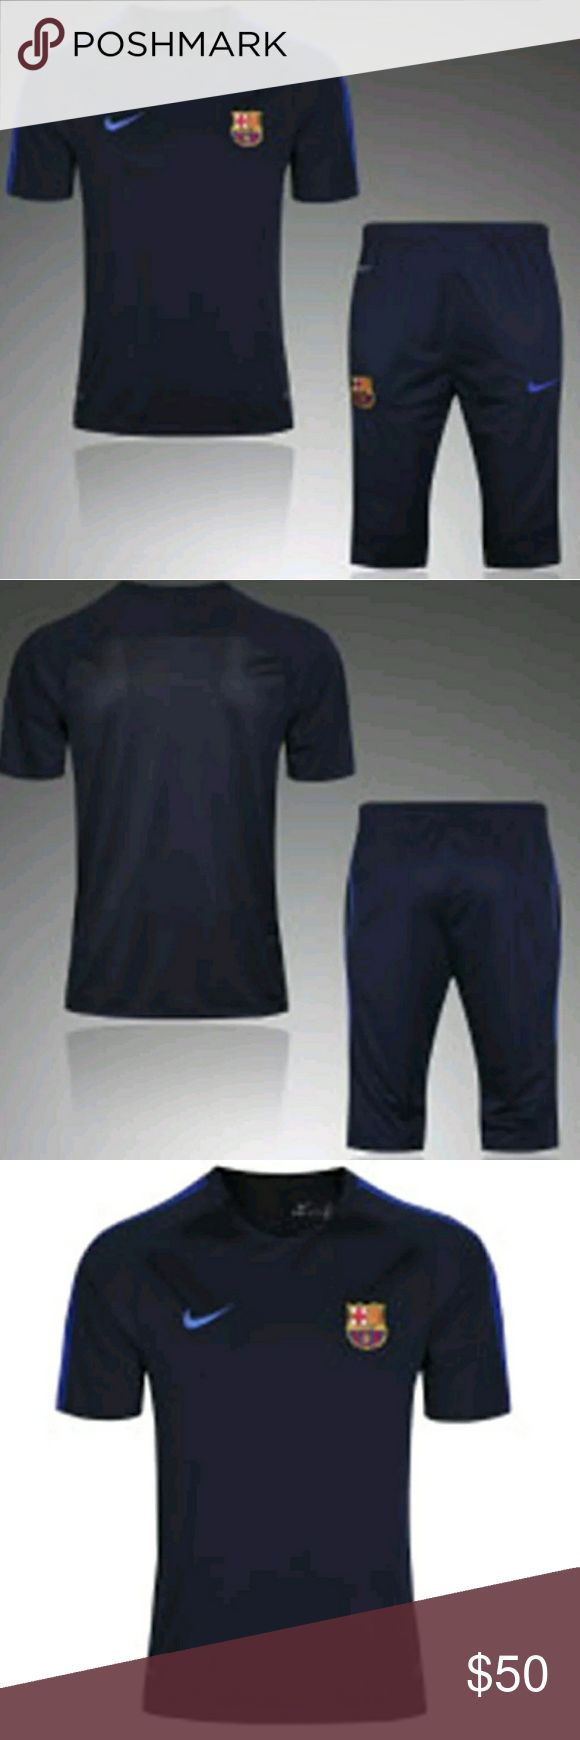 BARCELONA TRAINING SET ROYAL BLUE This a brand new barcelona Training set royal blue 2pcs color  royal blue   Prices are firm, you only get discount by adding 2 items to your bundle. Nike Other